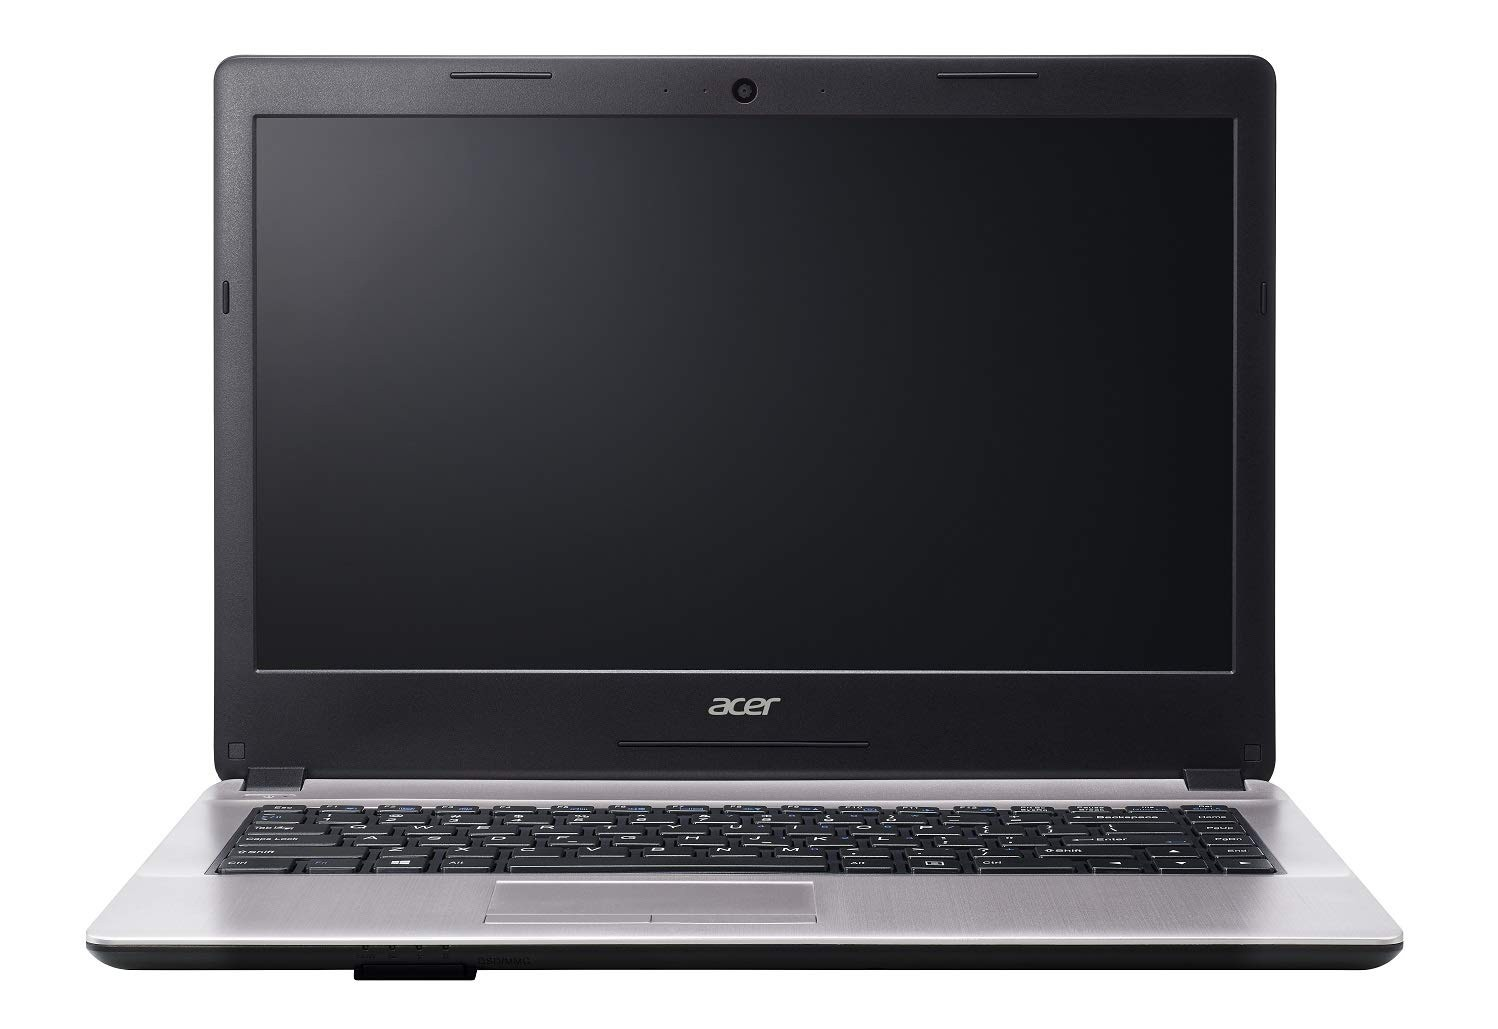 Refurbished laptops & desktops - ACER ONE 14 PENTIUM GOLD - (4 GB/1 TB HDD/WINDOWS 10 HOME) Z2-485 THIN AND LIGHT LAPTOP